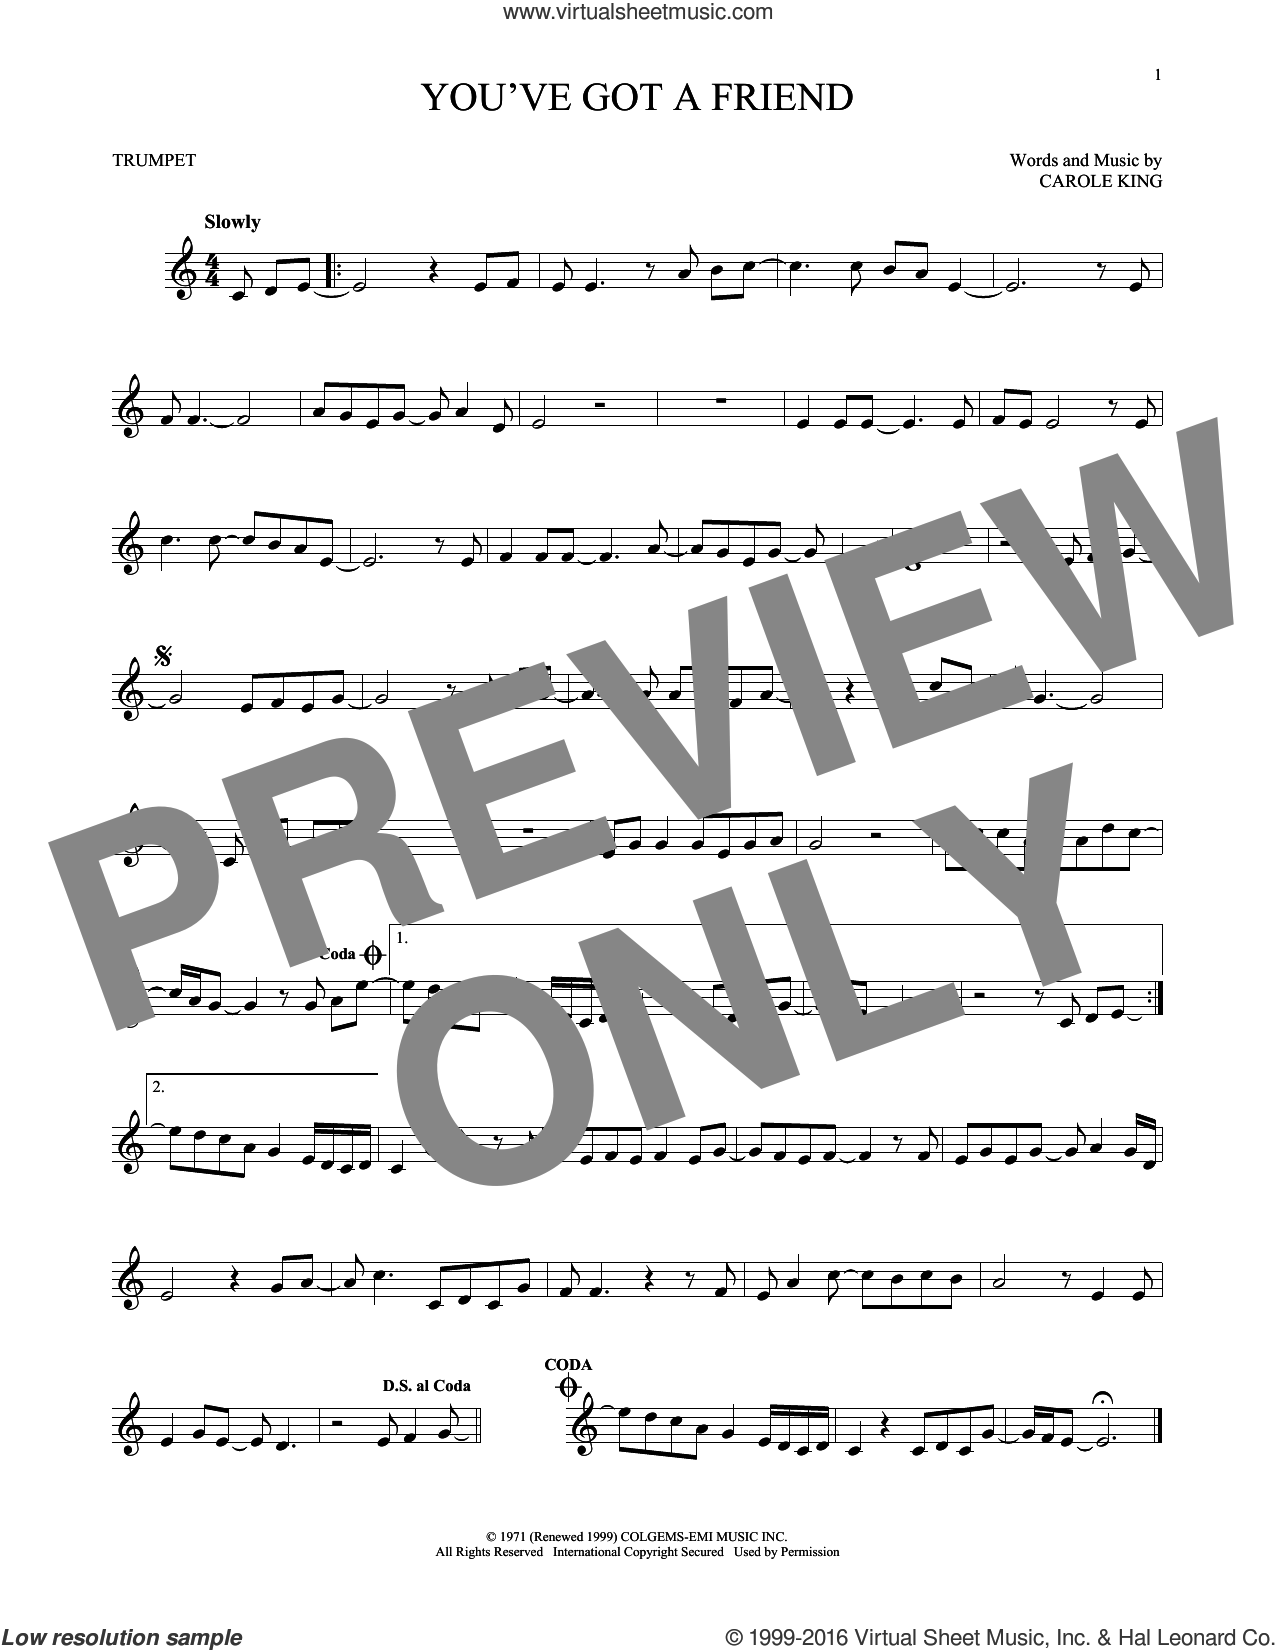 You've Got A Friend sheet music for trumpet solo by James Taylor and Carole King, intermediate